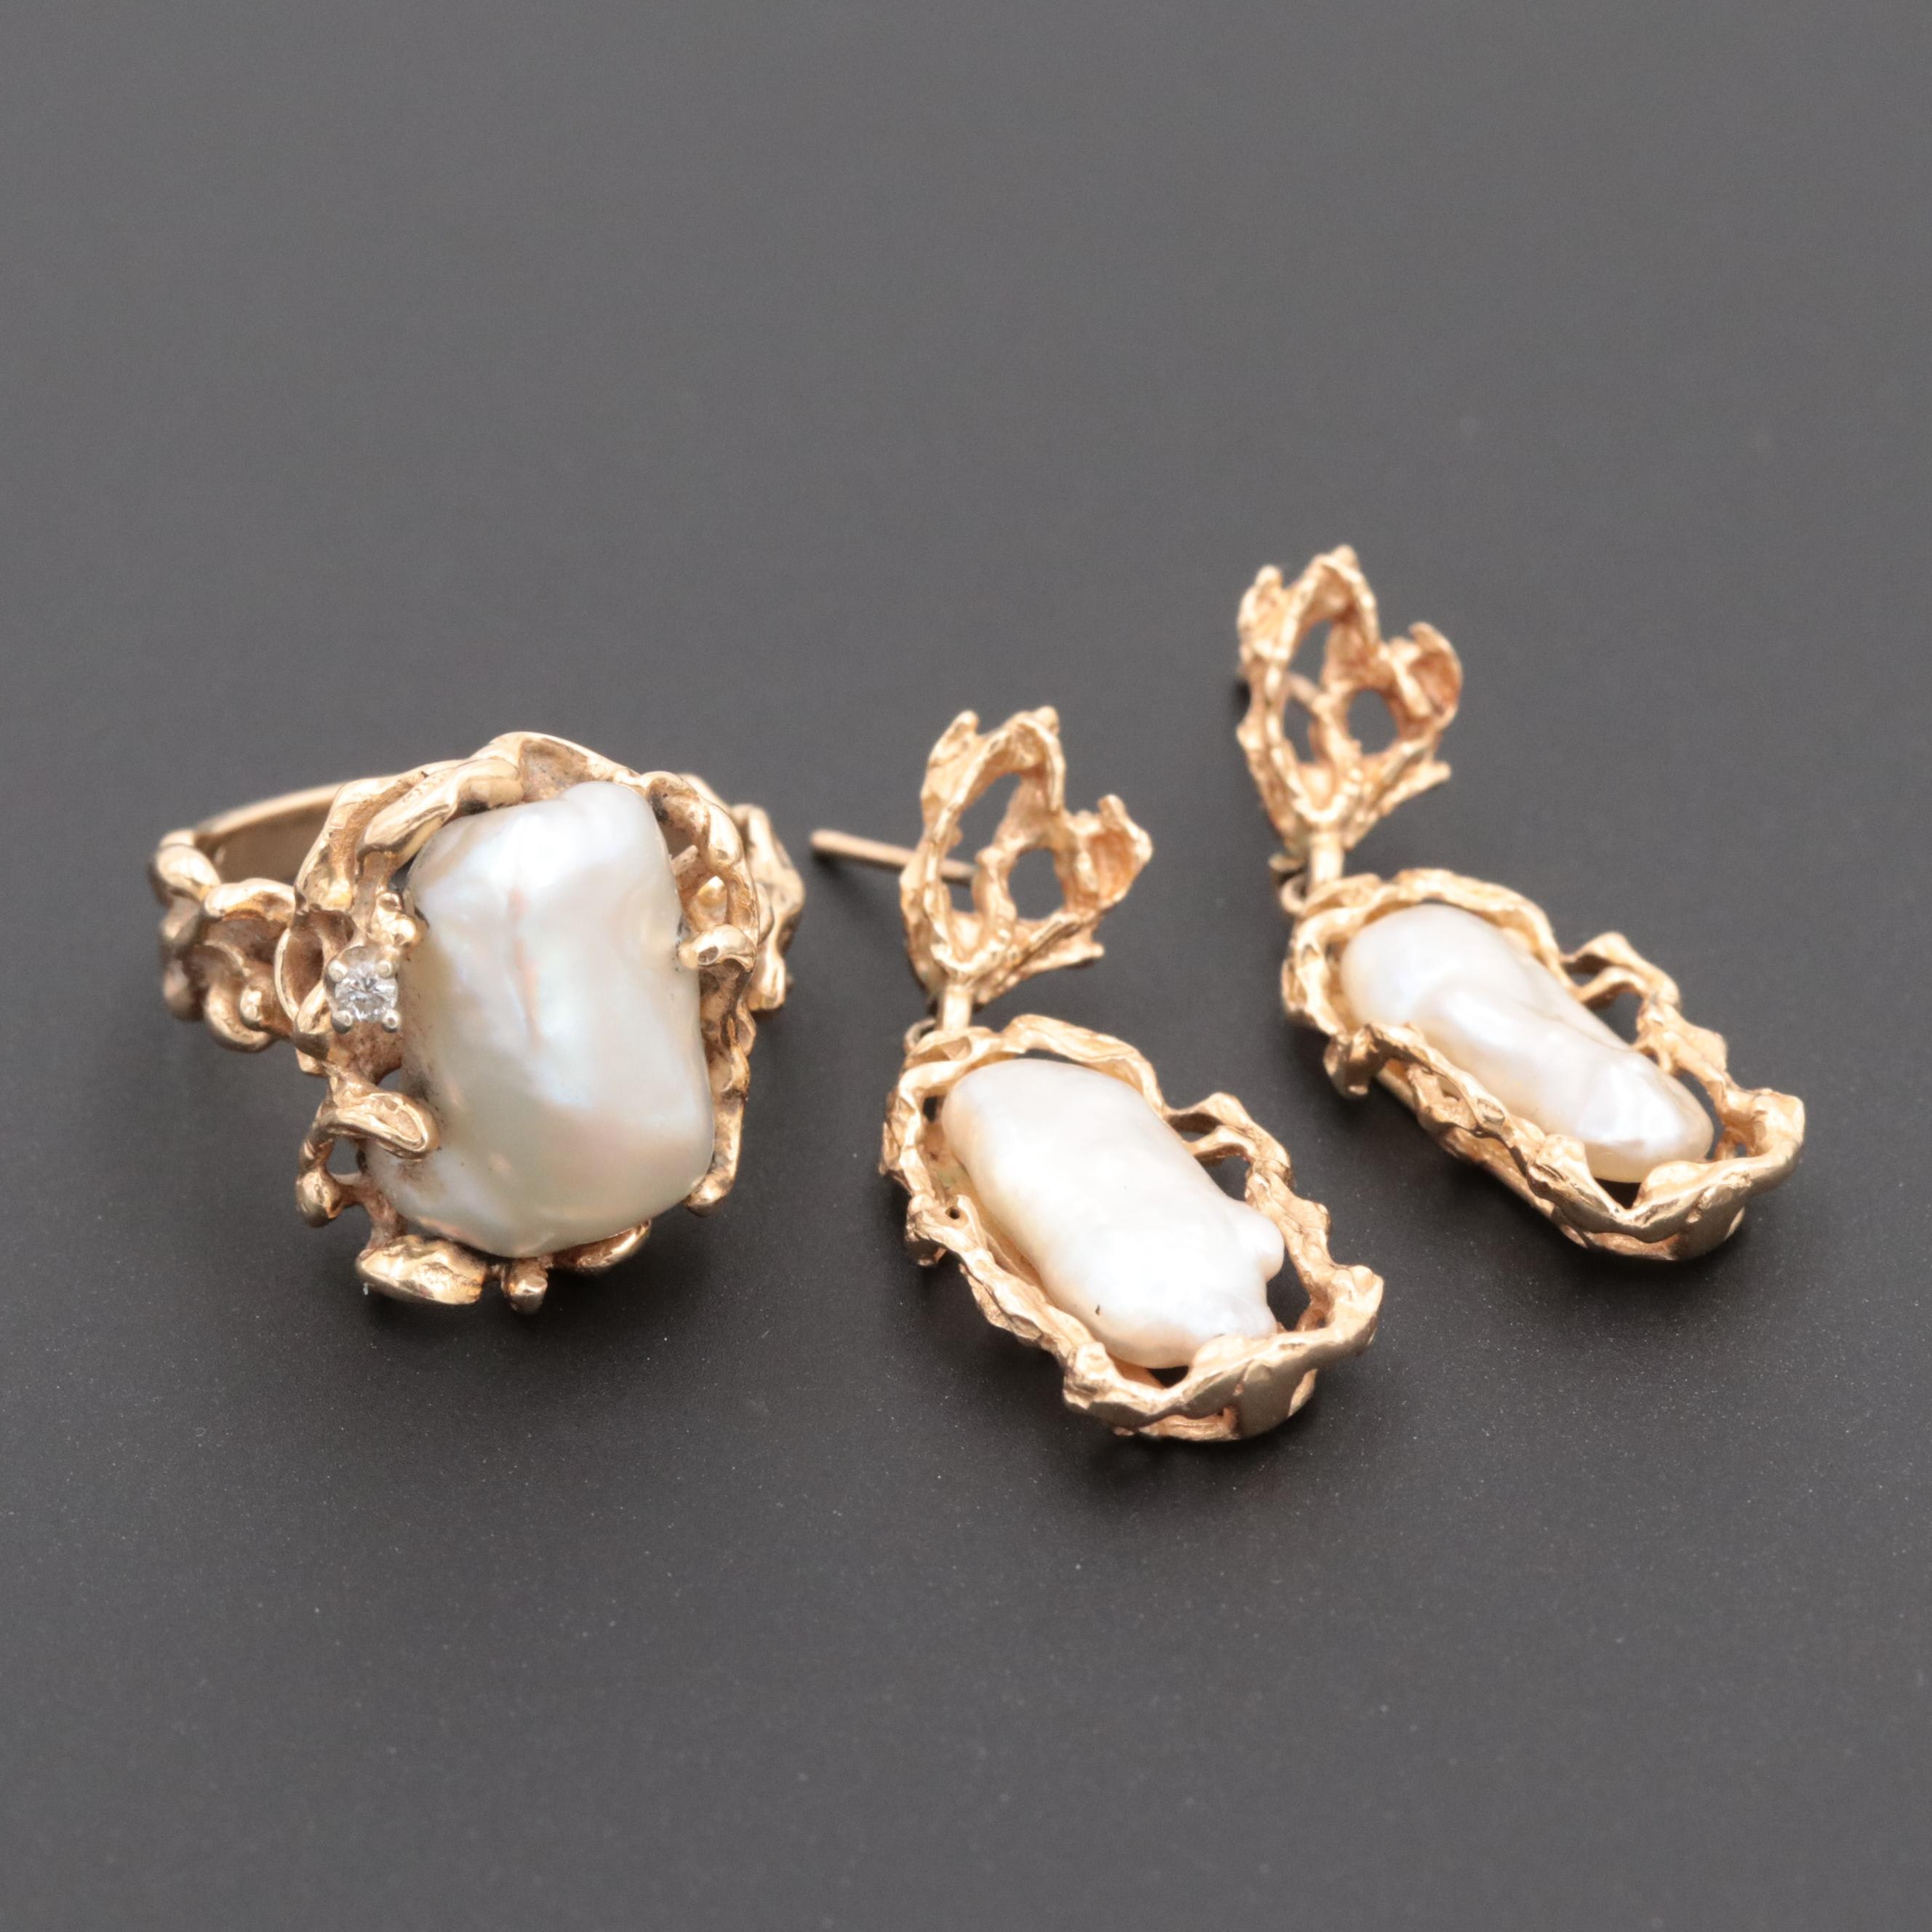 14K Yellow Gold Cultured Keshi Pearl Earrings and Ring with Diamond Accent